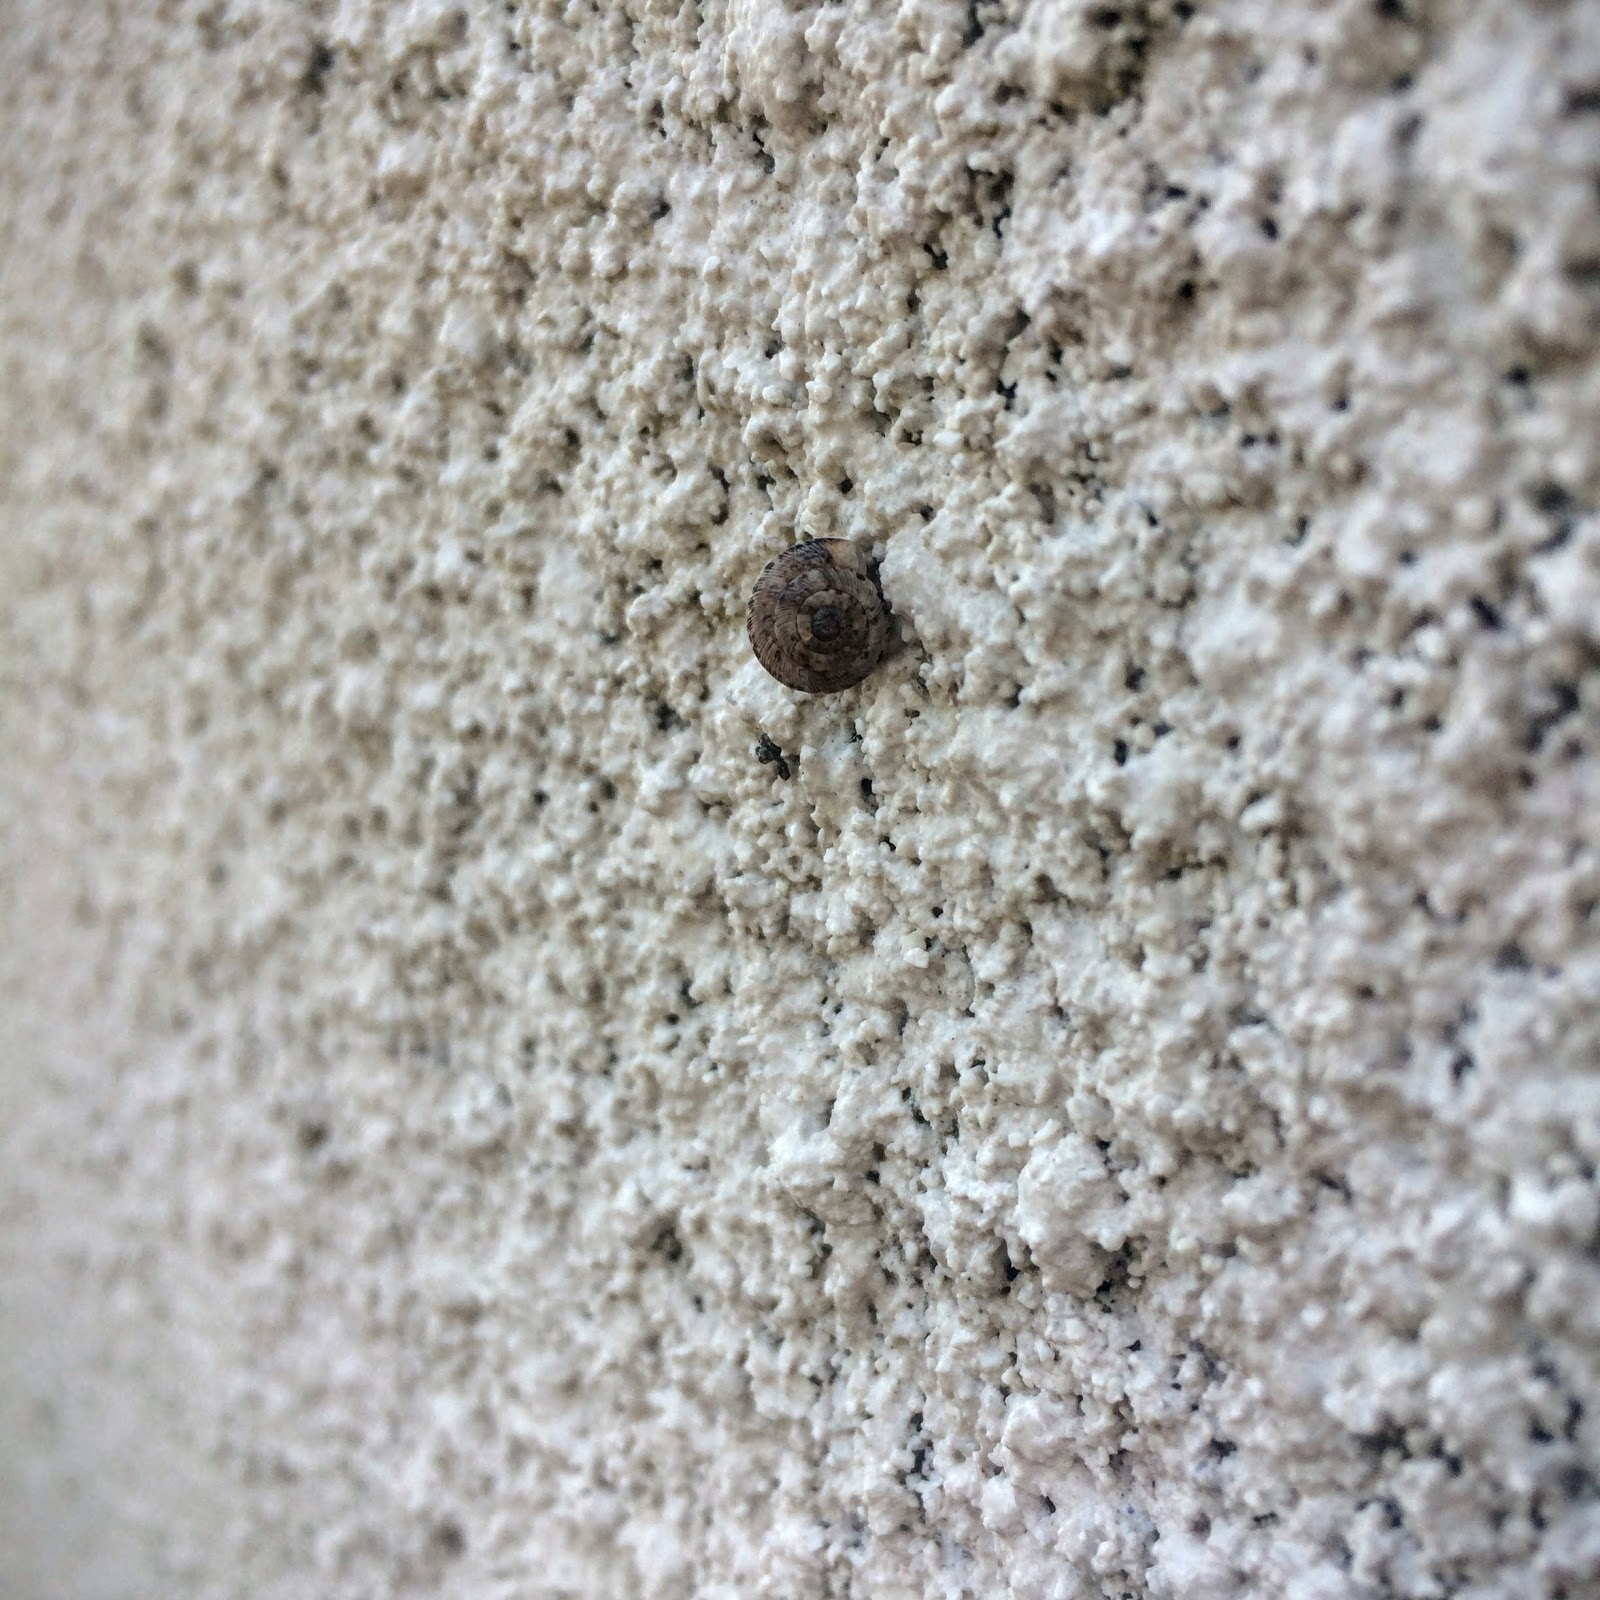 snail, small snail, snail on wall,  school runs, pembrokeshire, rural life, everyday, nature walk, girl with umbrella, umbrella, rainy walk, thomas the tank, spiderweb, spiderweb in rain, pink flowers, pink chysantheums,